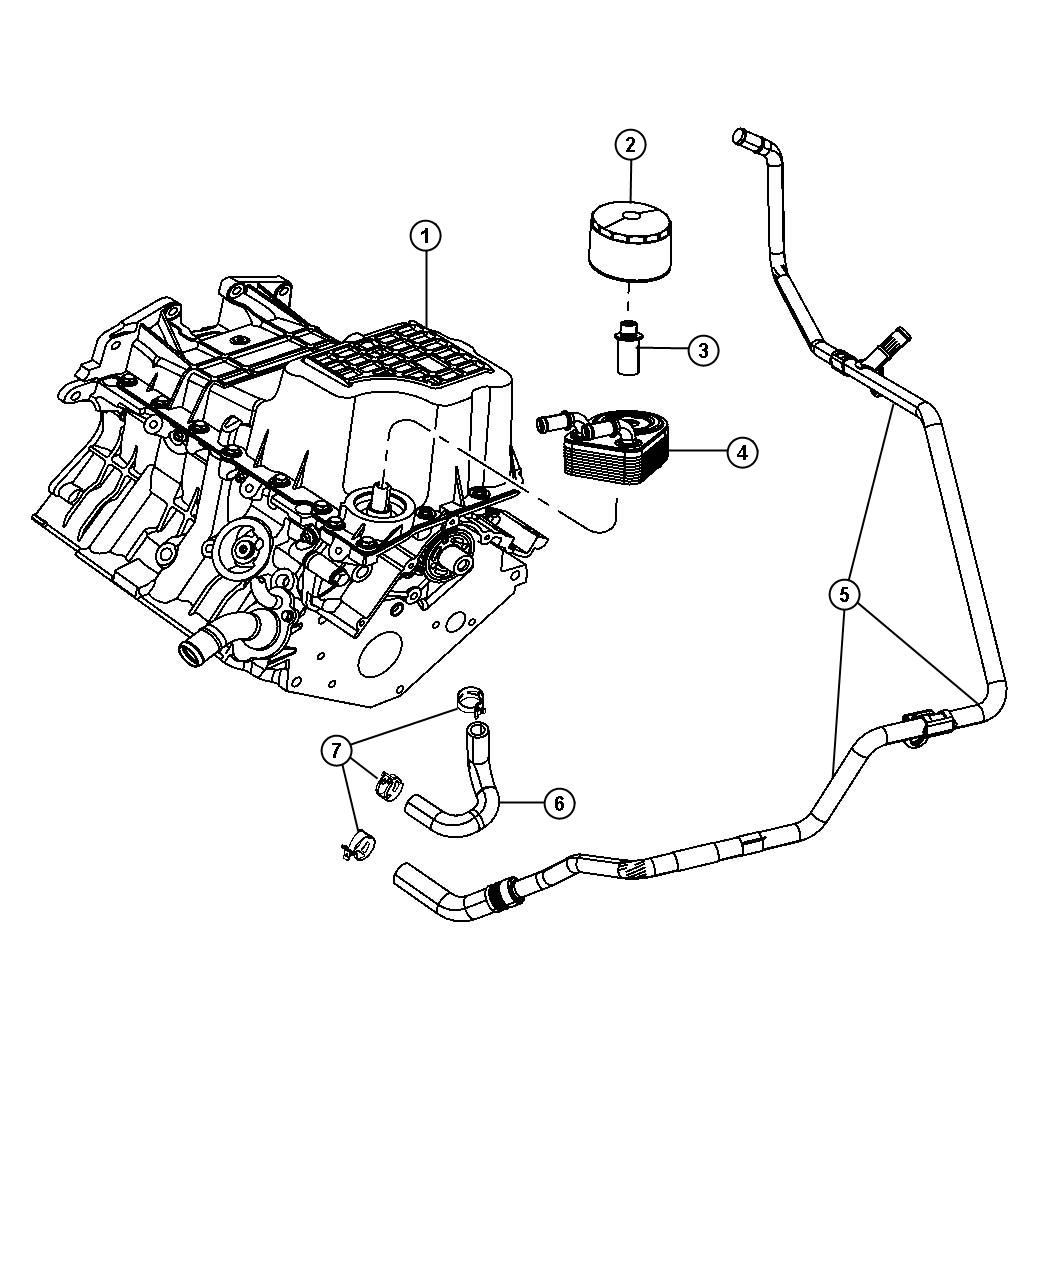 Cadillac Srx Fuel Filter Location